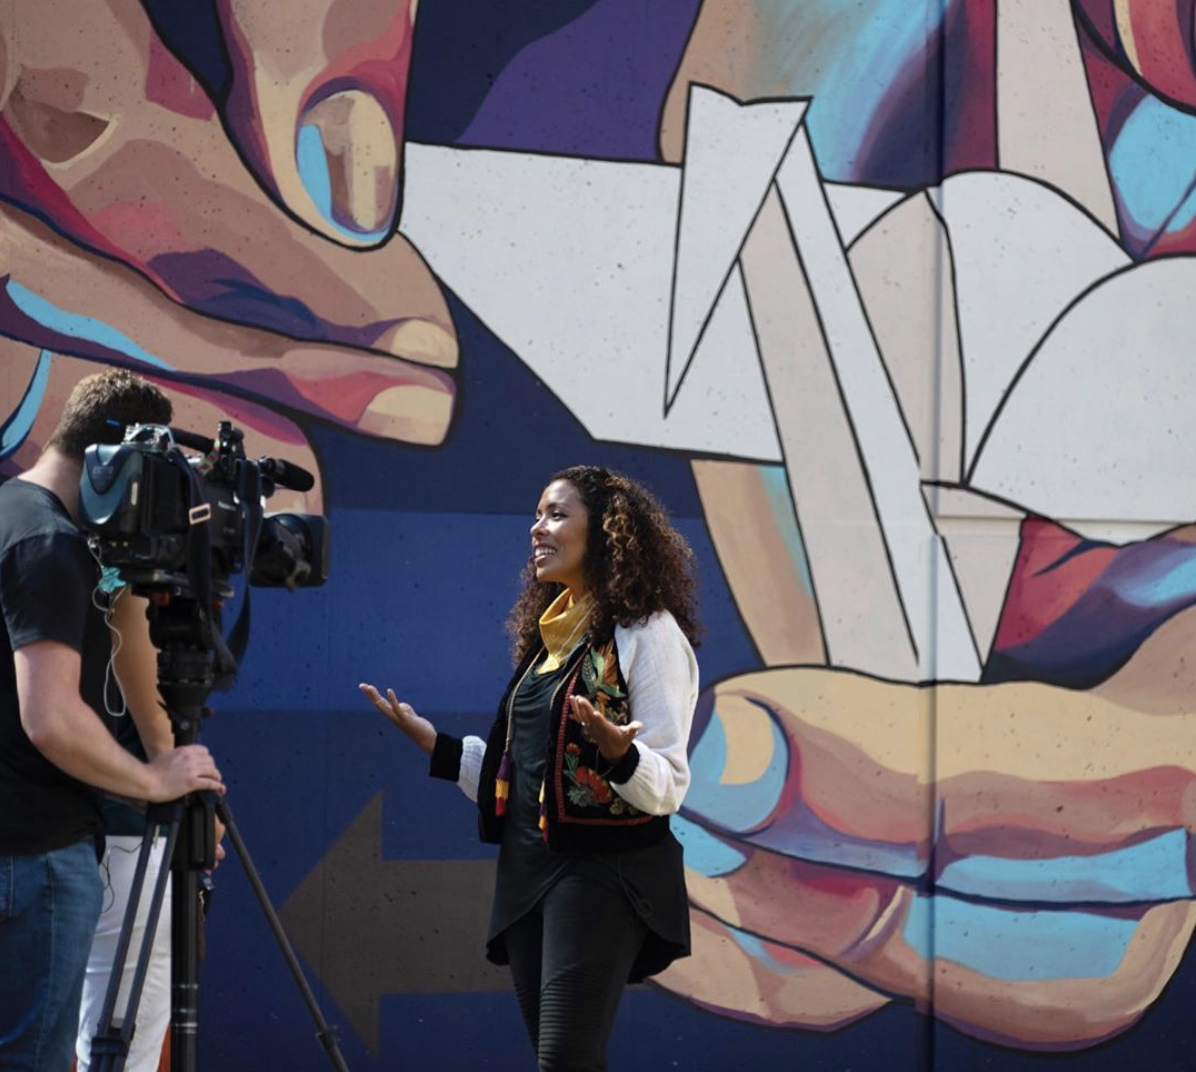 Lots of press! NBC did a story on my work and participation at the InkBlock Underground Mural Project.